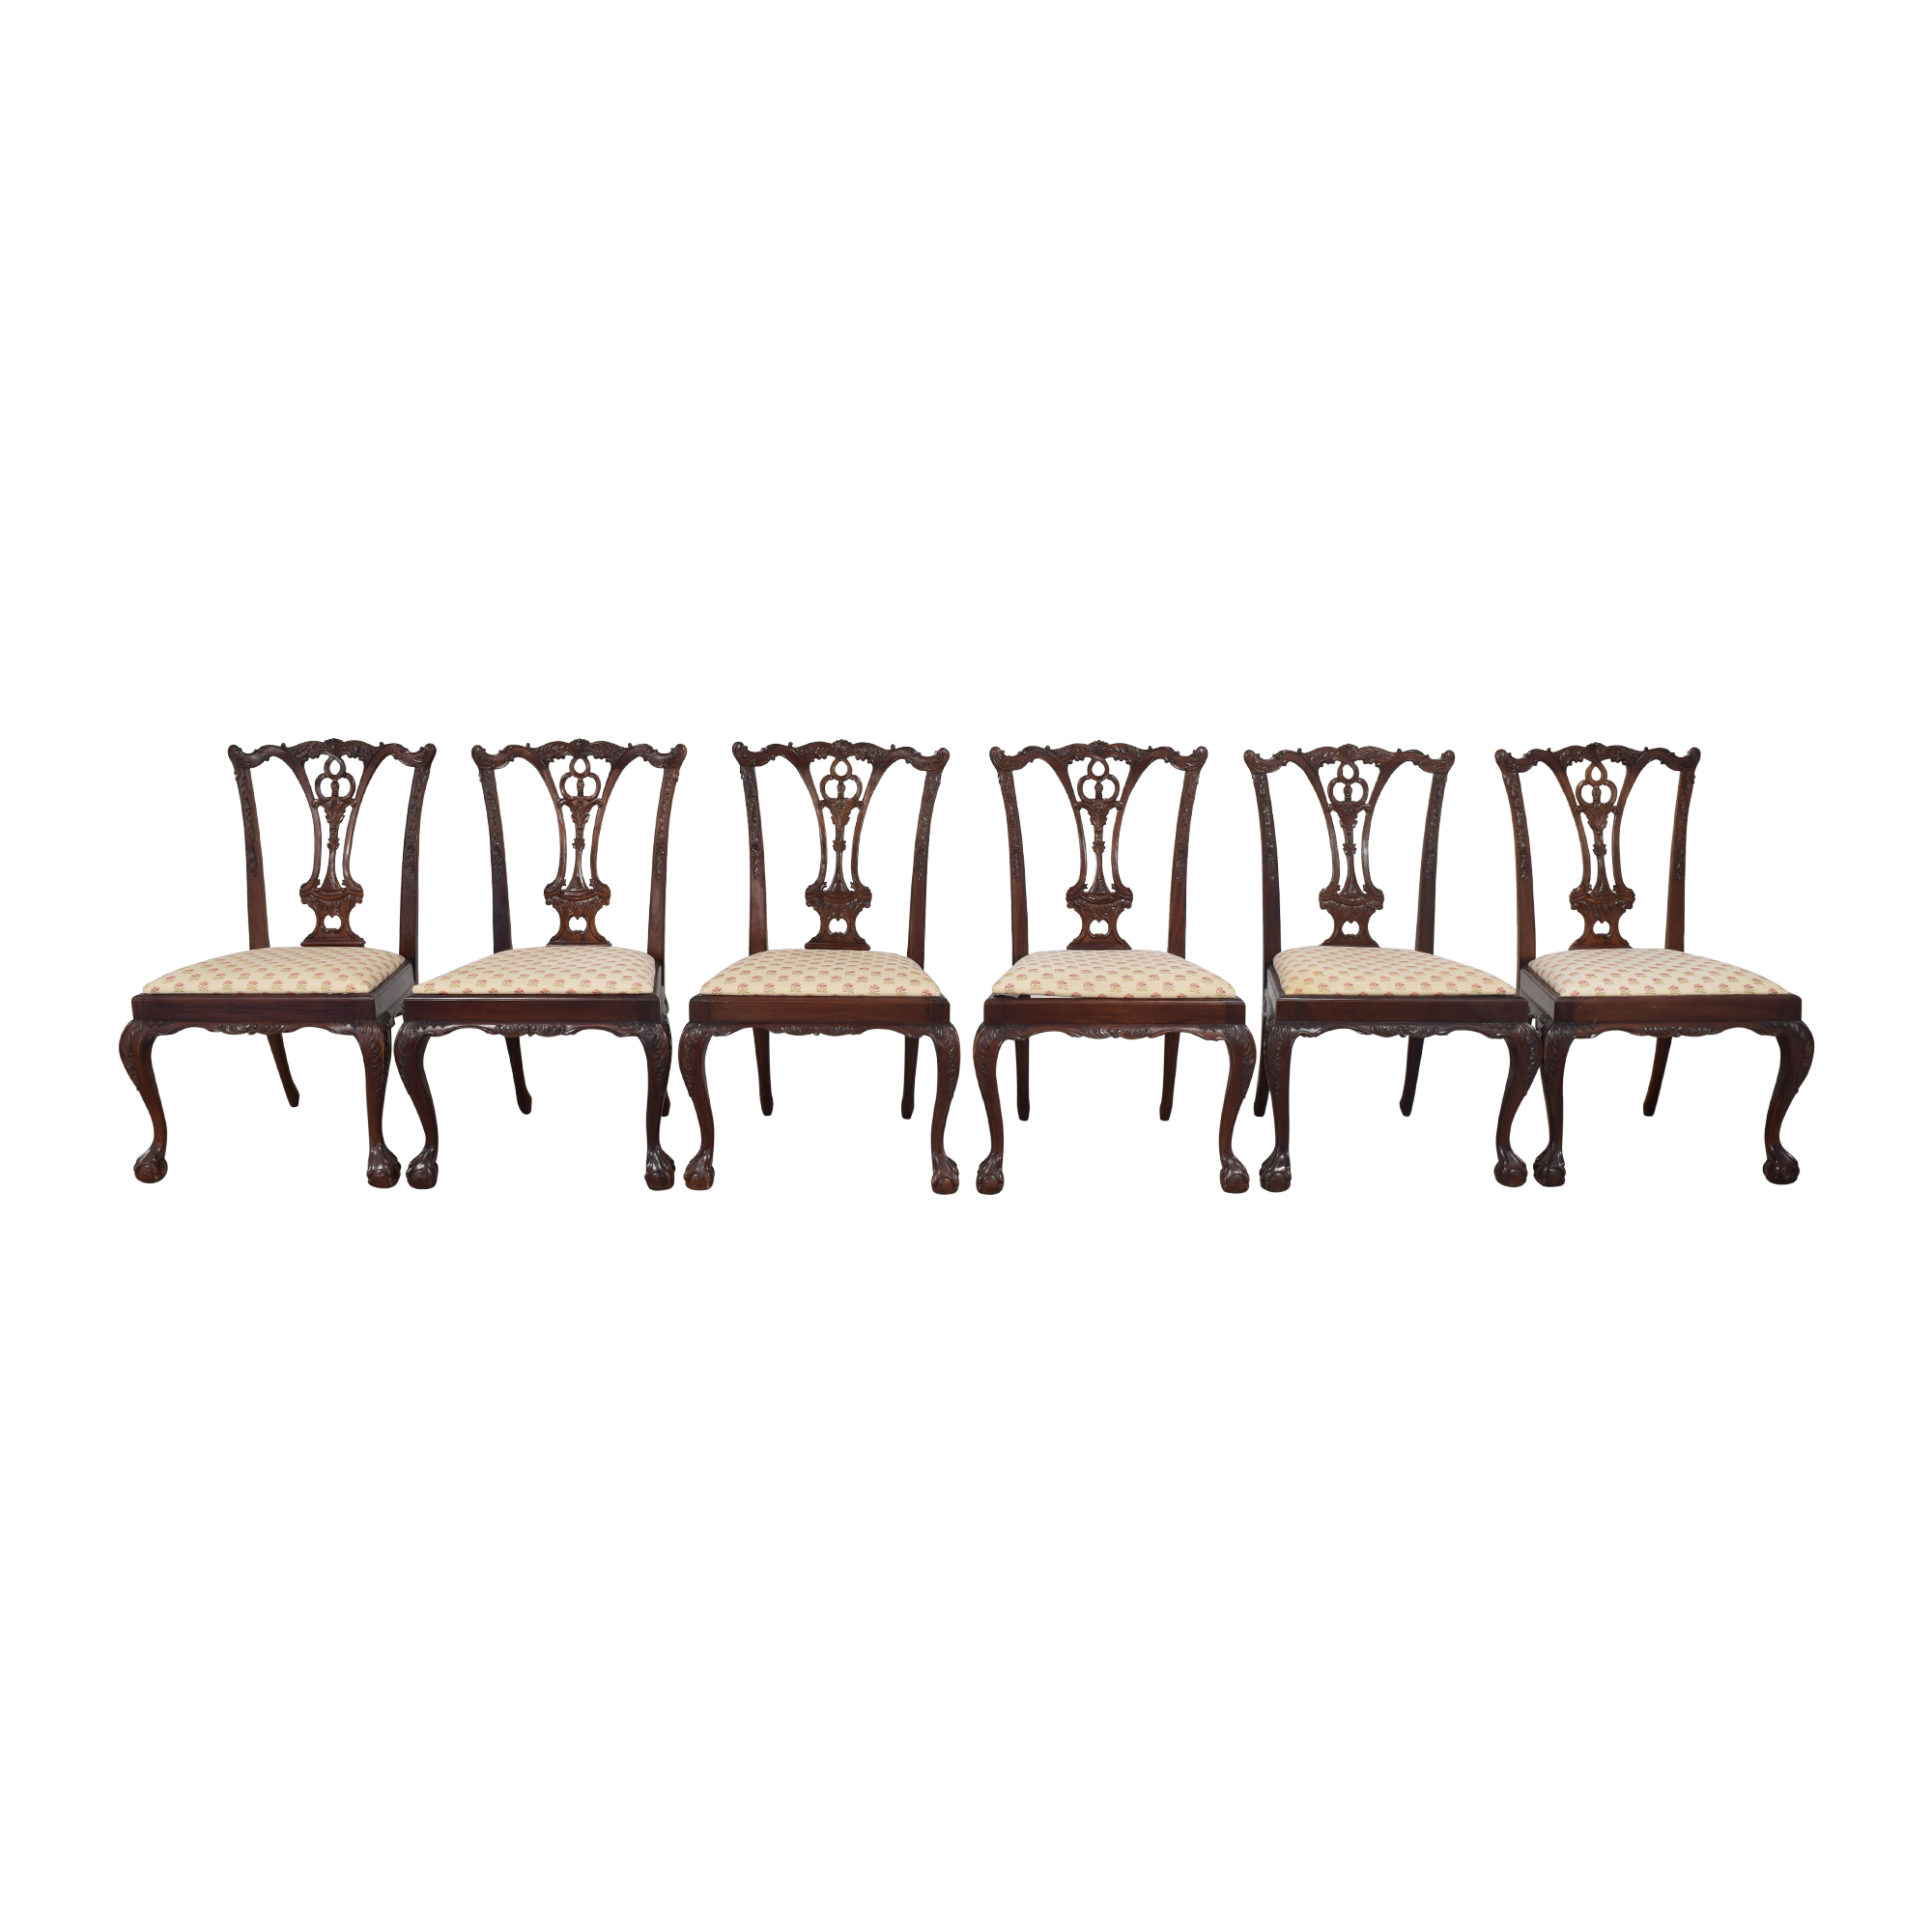 Paramount Antiques Paramount Antiques Chippendale Dining Side Chairs nj